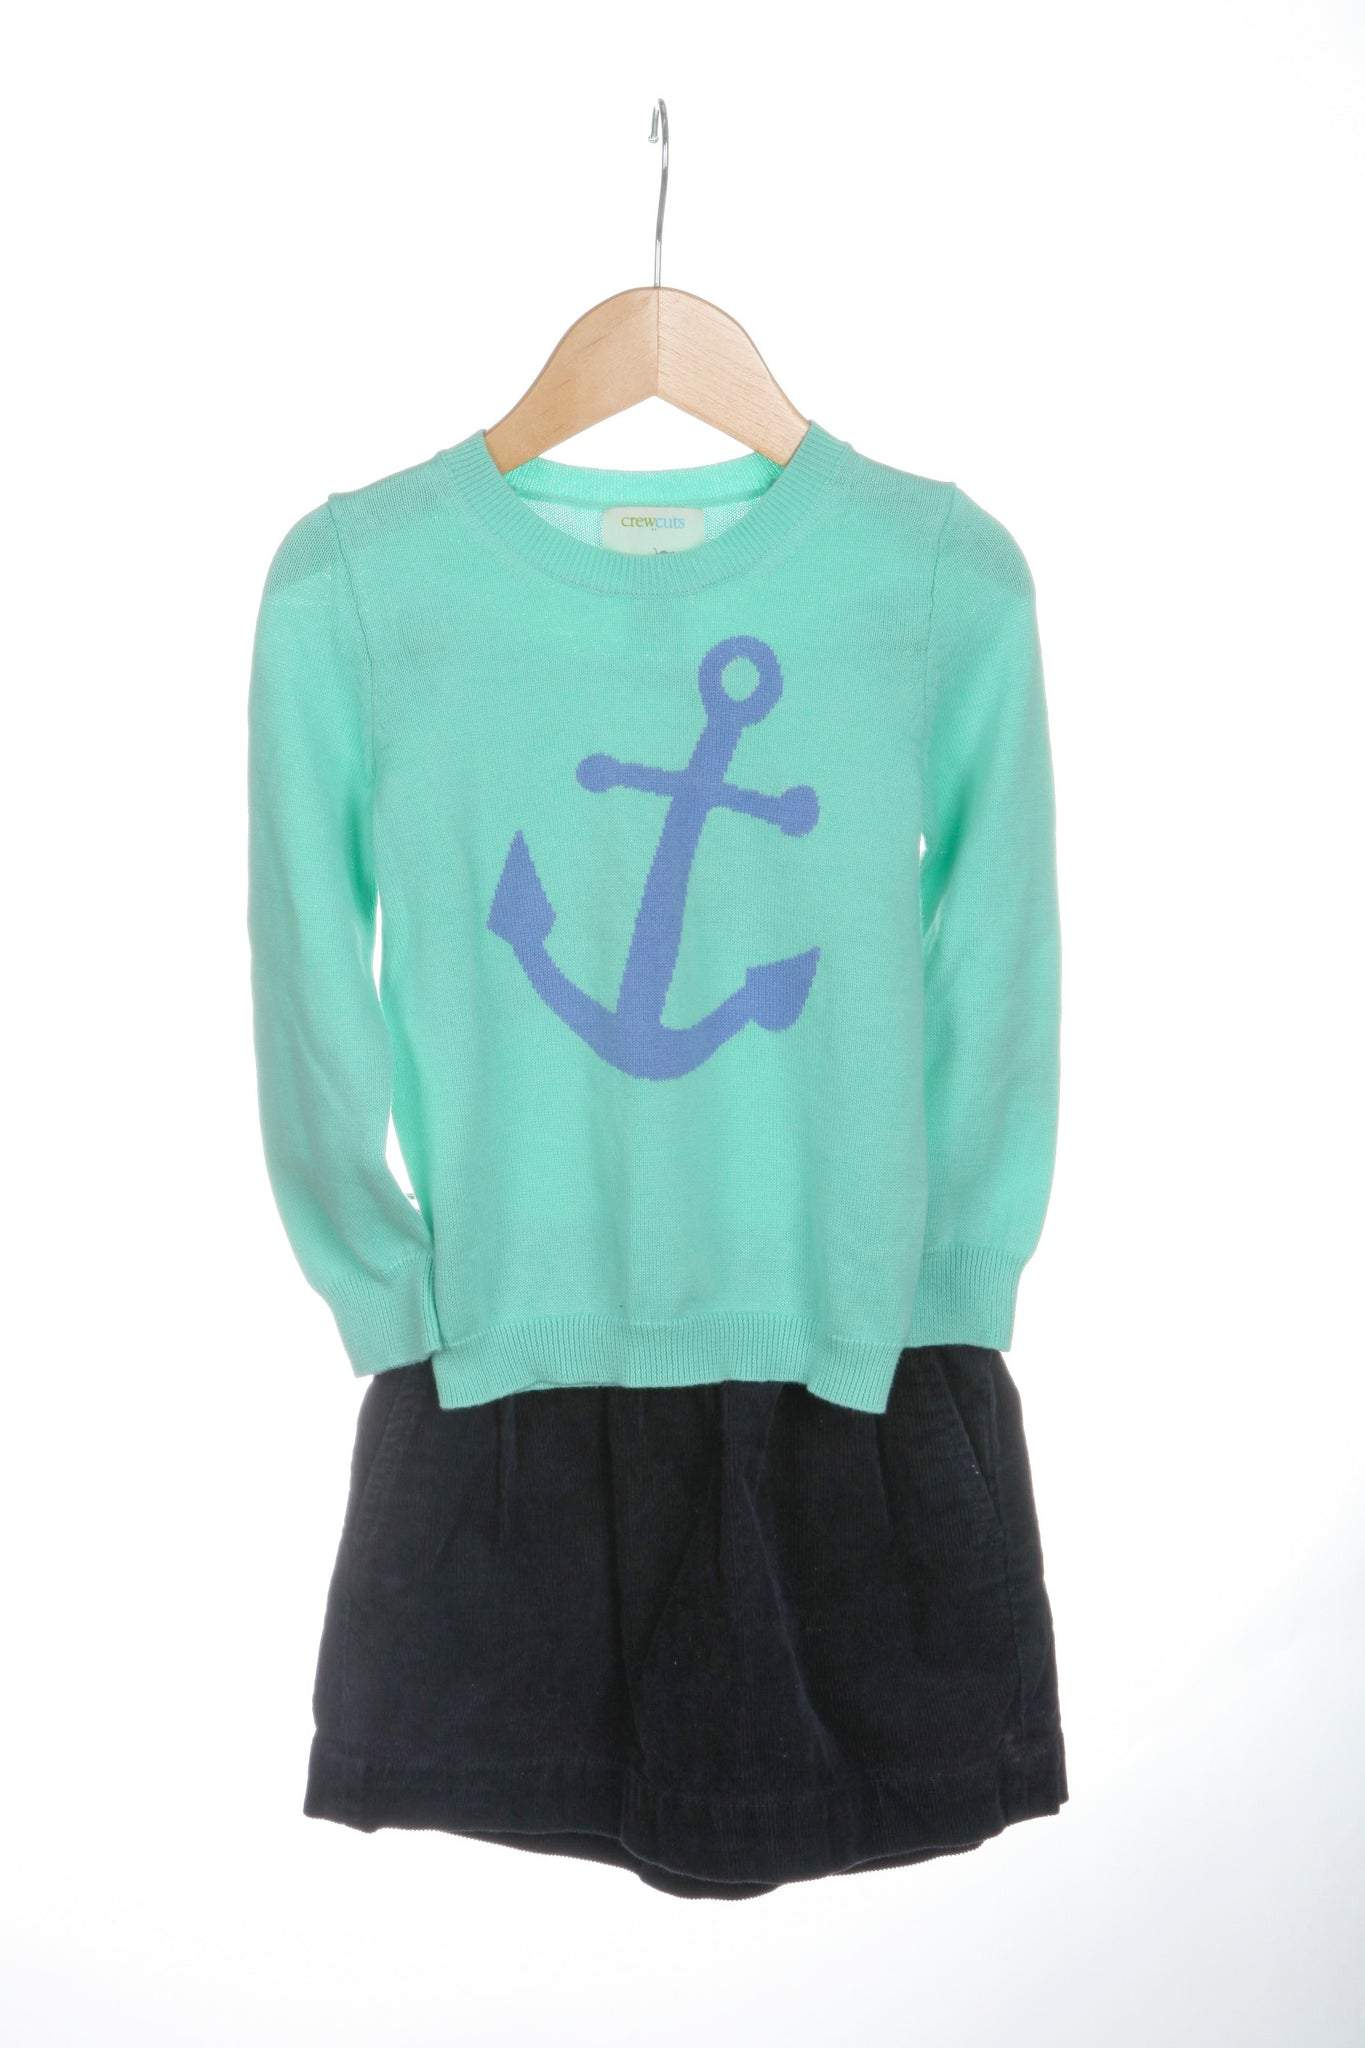 CREWCUTS Girl's Outfit Mint Green Sweater Blue Corduroy Skirt Size 3T